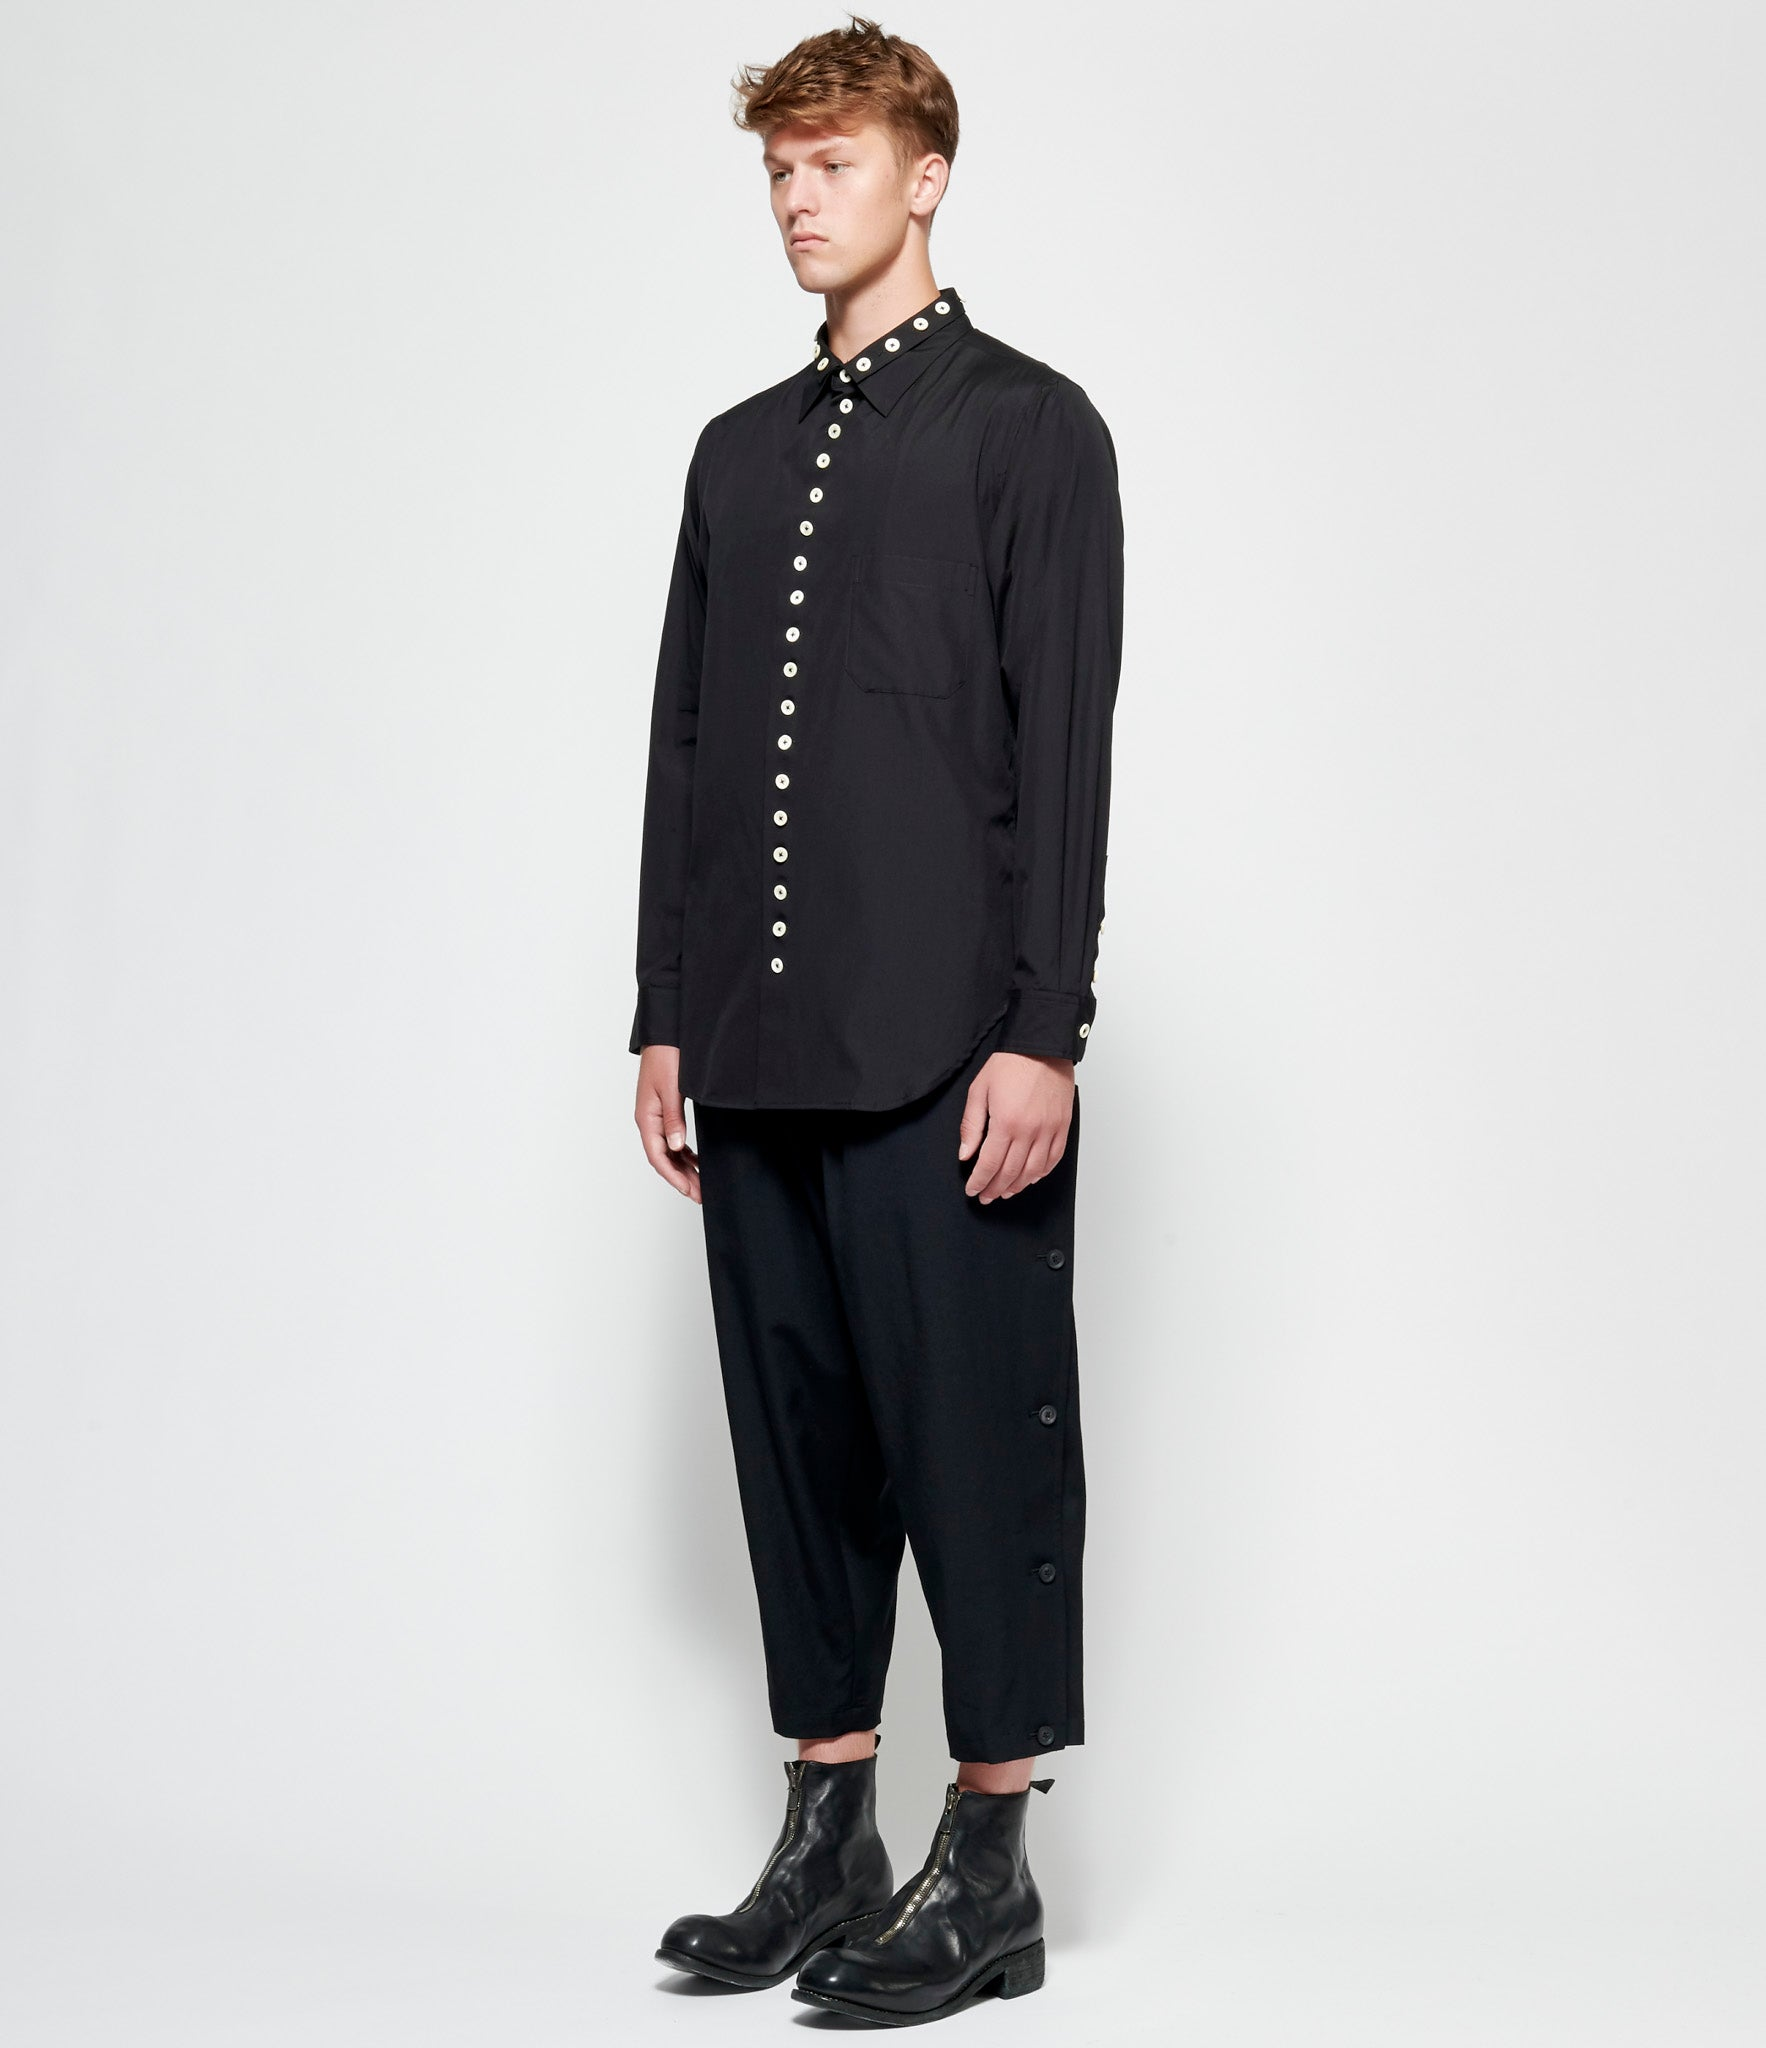 Yohji Yamamoto Pour Homme Integrated-W Collar White Button Shirt